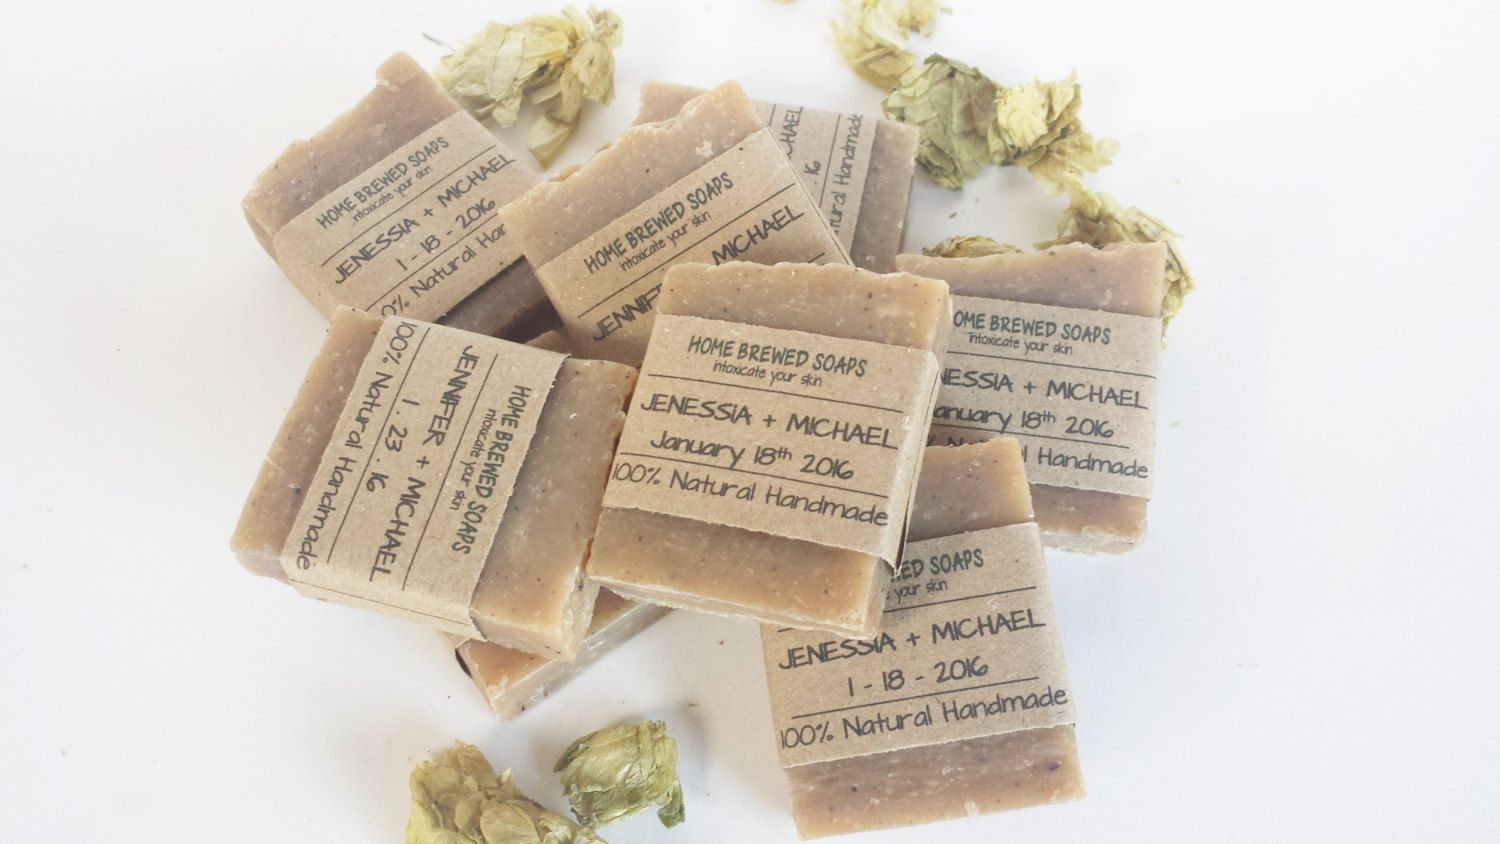 Not Sure What To Get For Wedding Favors Treat Your Guests Homemade Beer Soaps